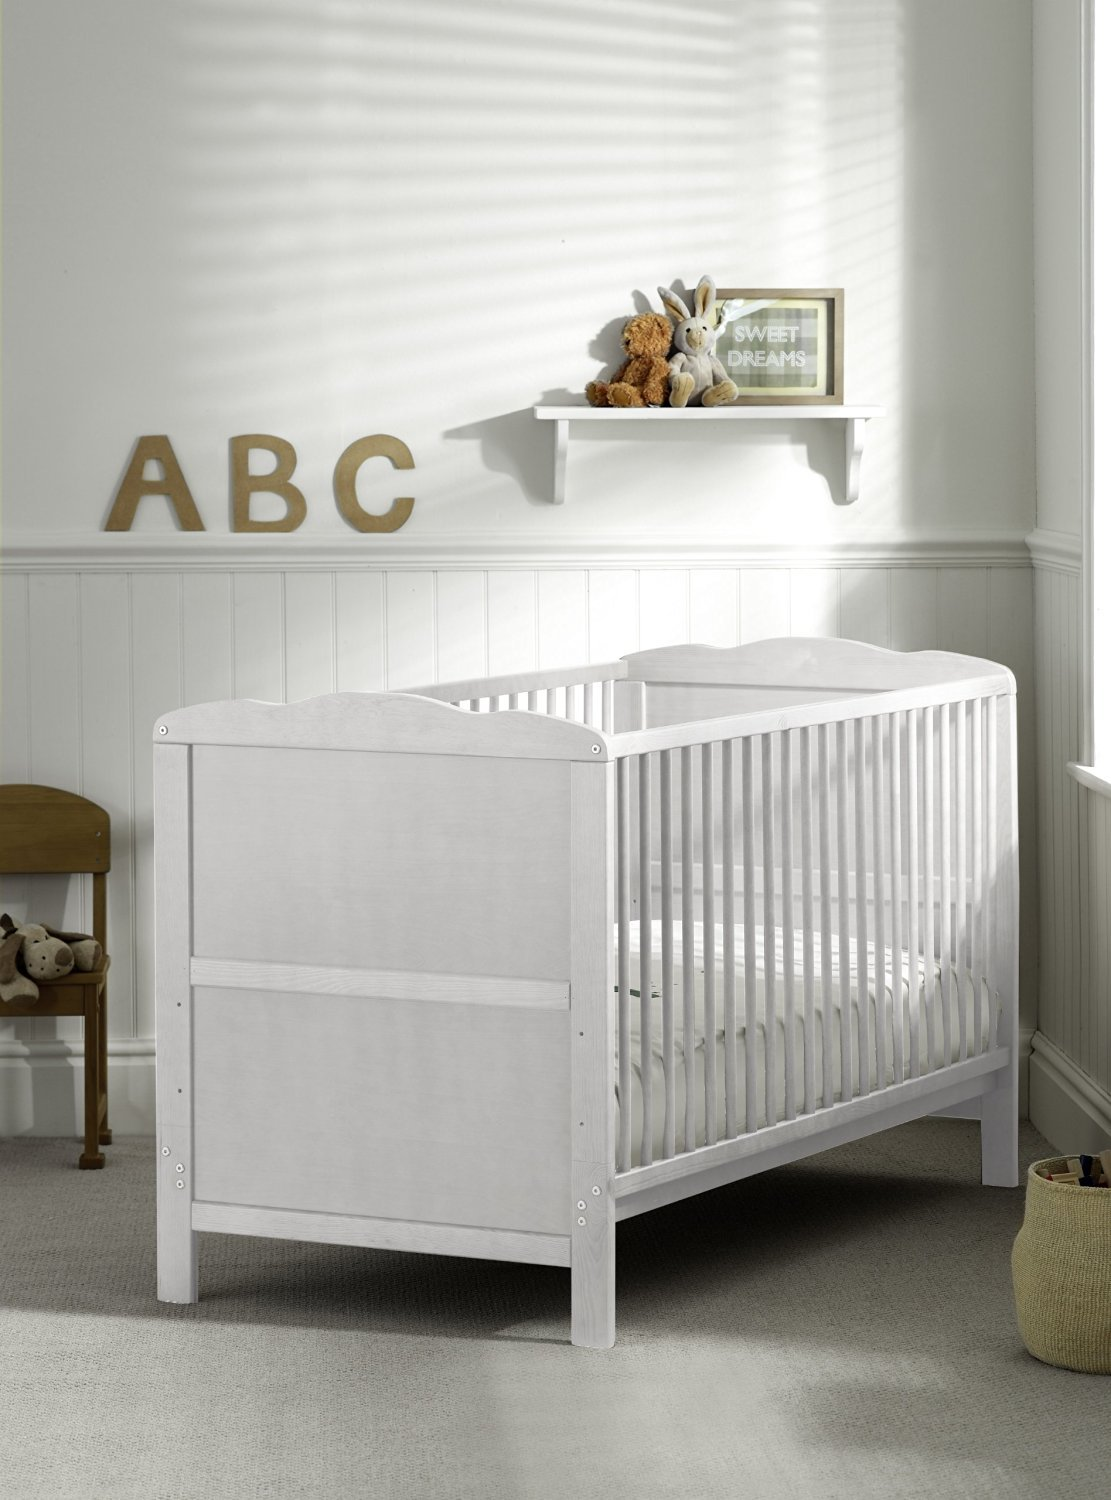 COT BED/JUNIOR BED LUXURY WHITE FINISH WITH FREE MATTRESS B4Beds©